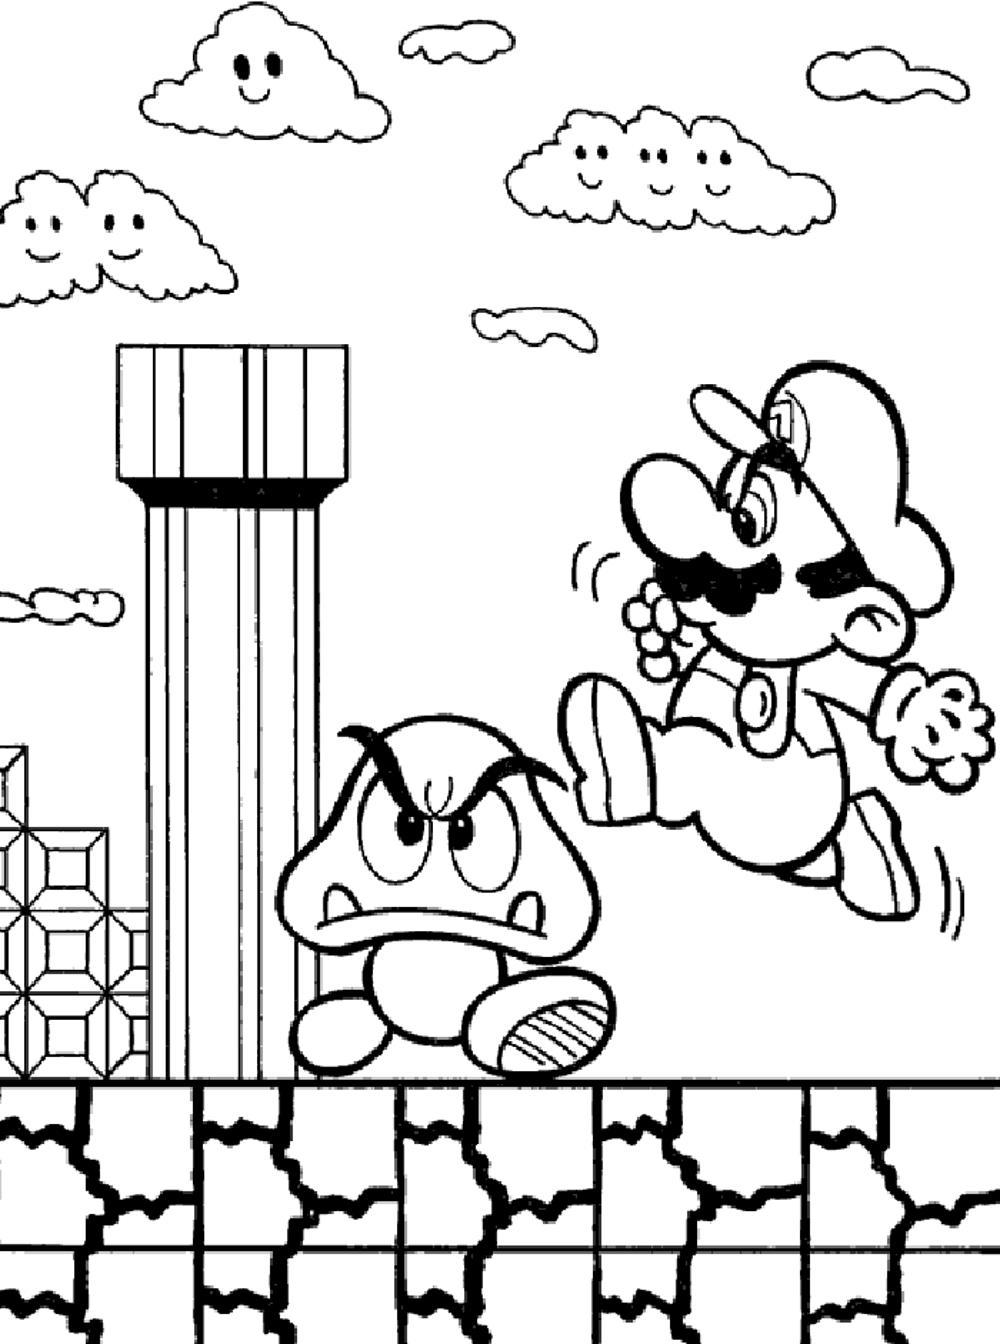 super mario bros printable coloring pages mario coloring pages themes best apps for kids printable super mario bros coloring pages